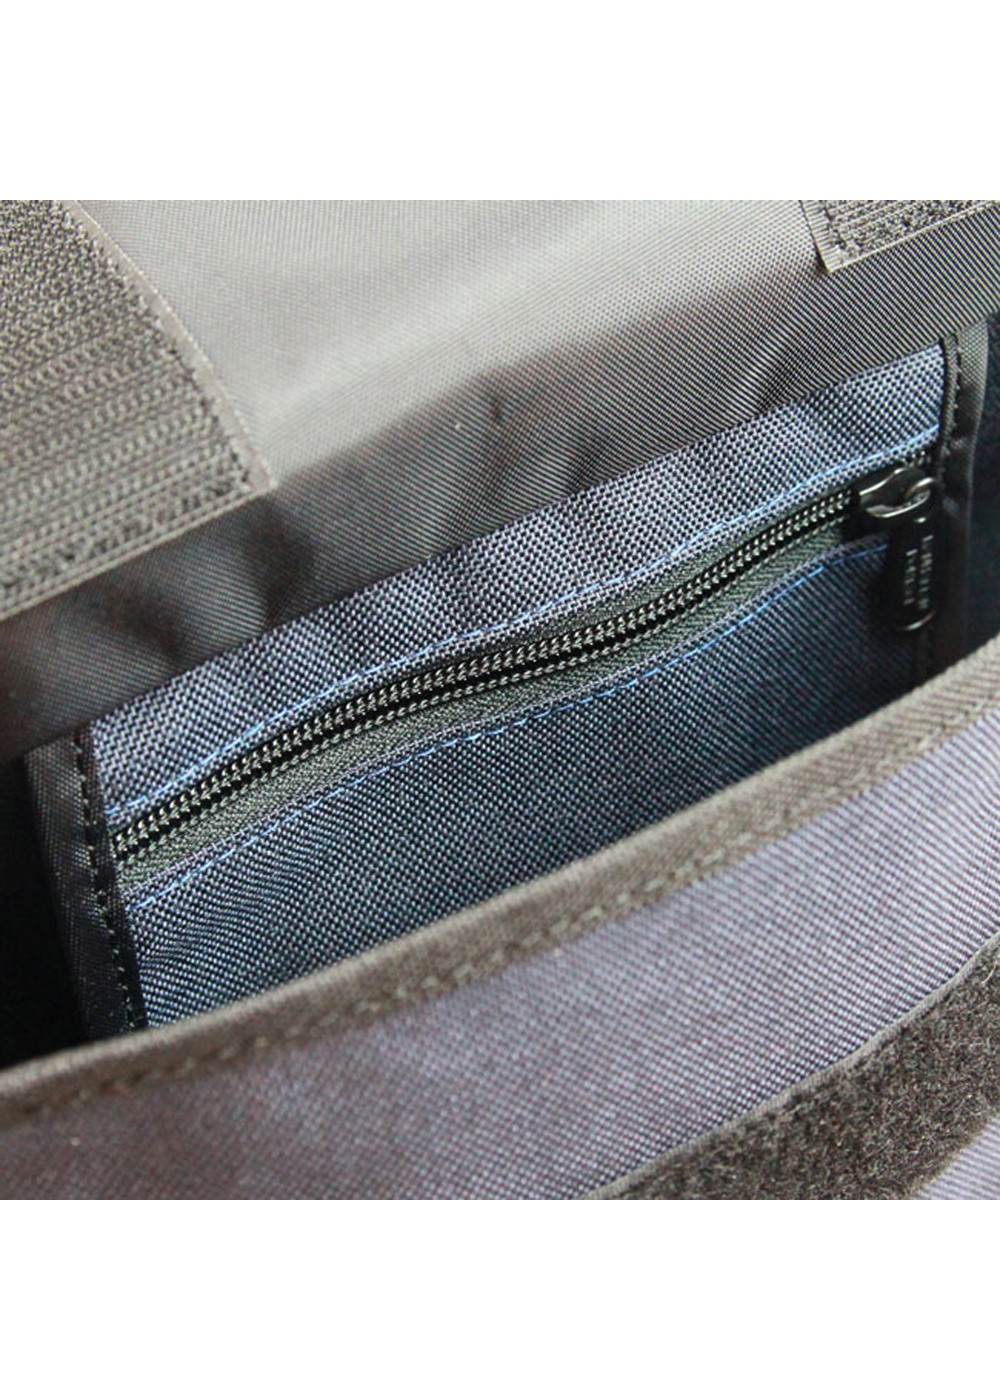 Casual Messenger Bag|迷彩|ショルダーバッグ|Travel &  Resort